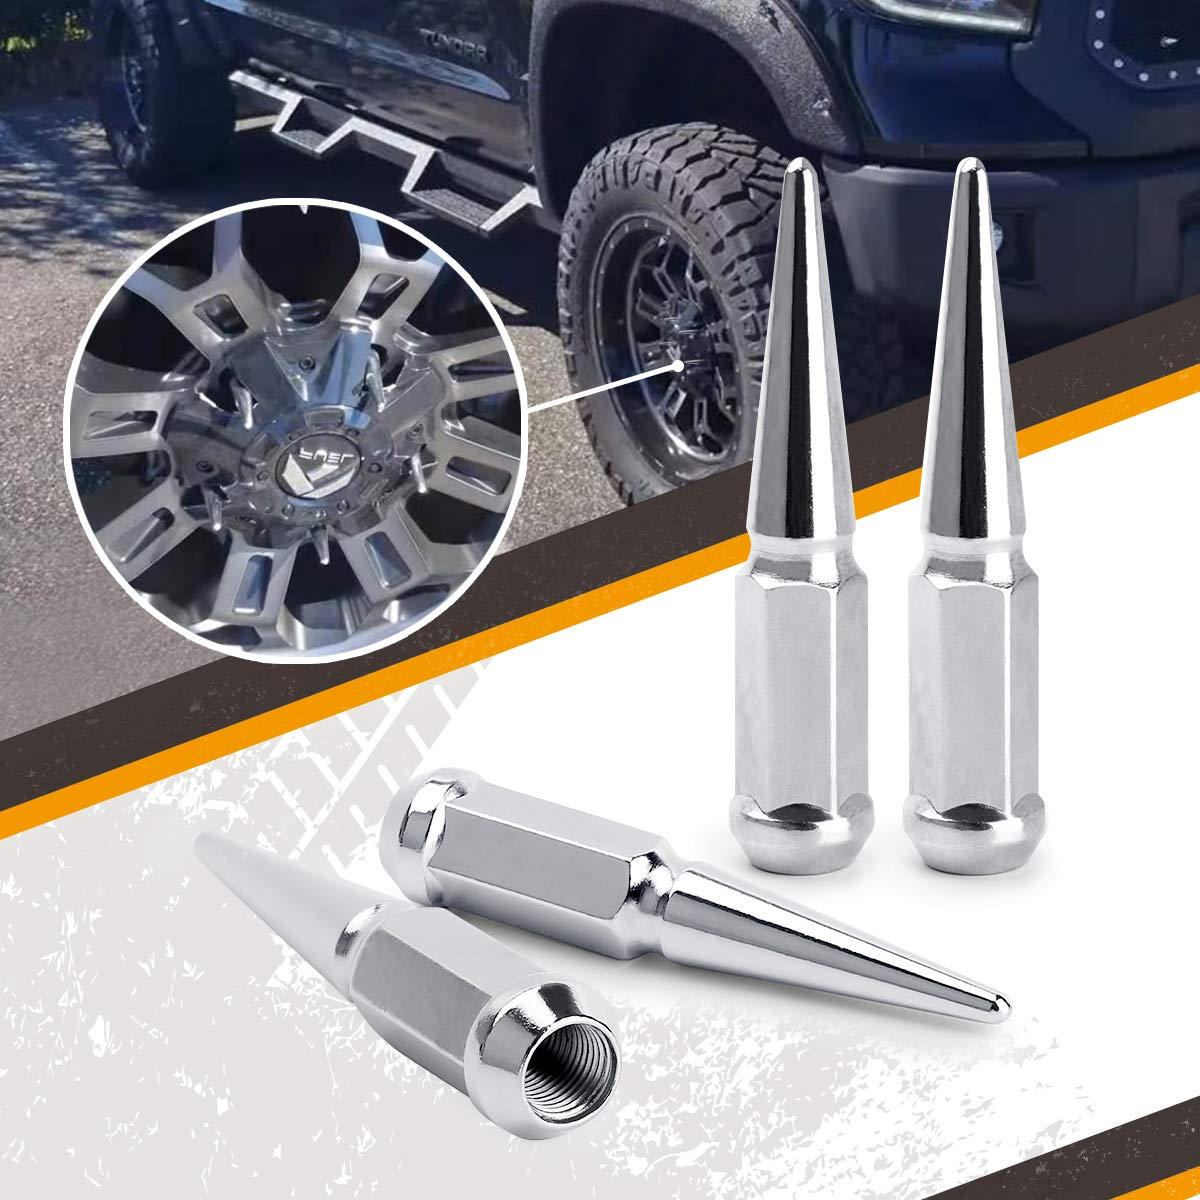 23 x Black 1//2-20 Lug nut Closed End 6 Spline Nut 1.38 Tall 3//4 Hex with 2 Keys Fits Dodge Jeep Ford Lincoln Pack of 23 Pcs 60 Degree Conical//Cone Bulge Seat Dynofit 1//2x20 Wheel Lug Nuts